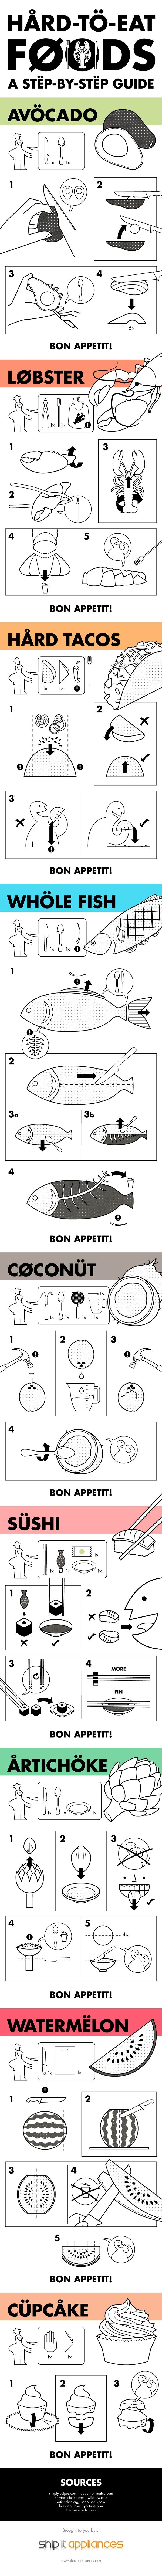 IKEA-Inspired Instruction Manuals Will Teach You How To Eat Difficult Foods - DesignTAXI.com